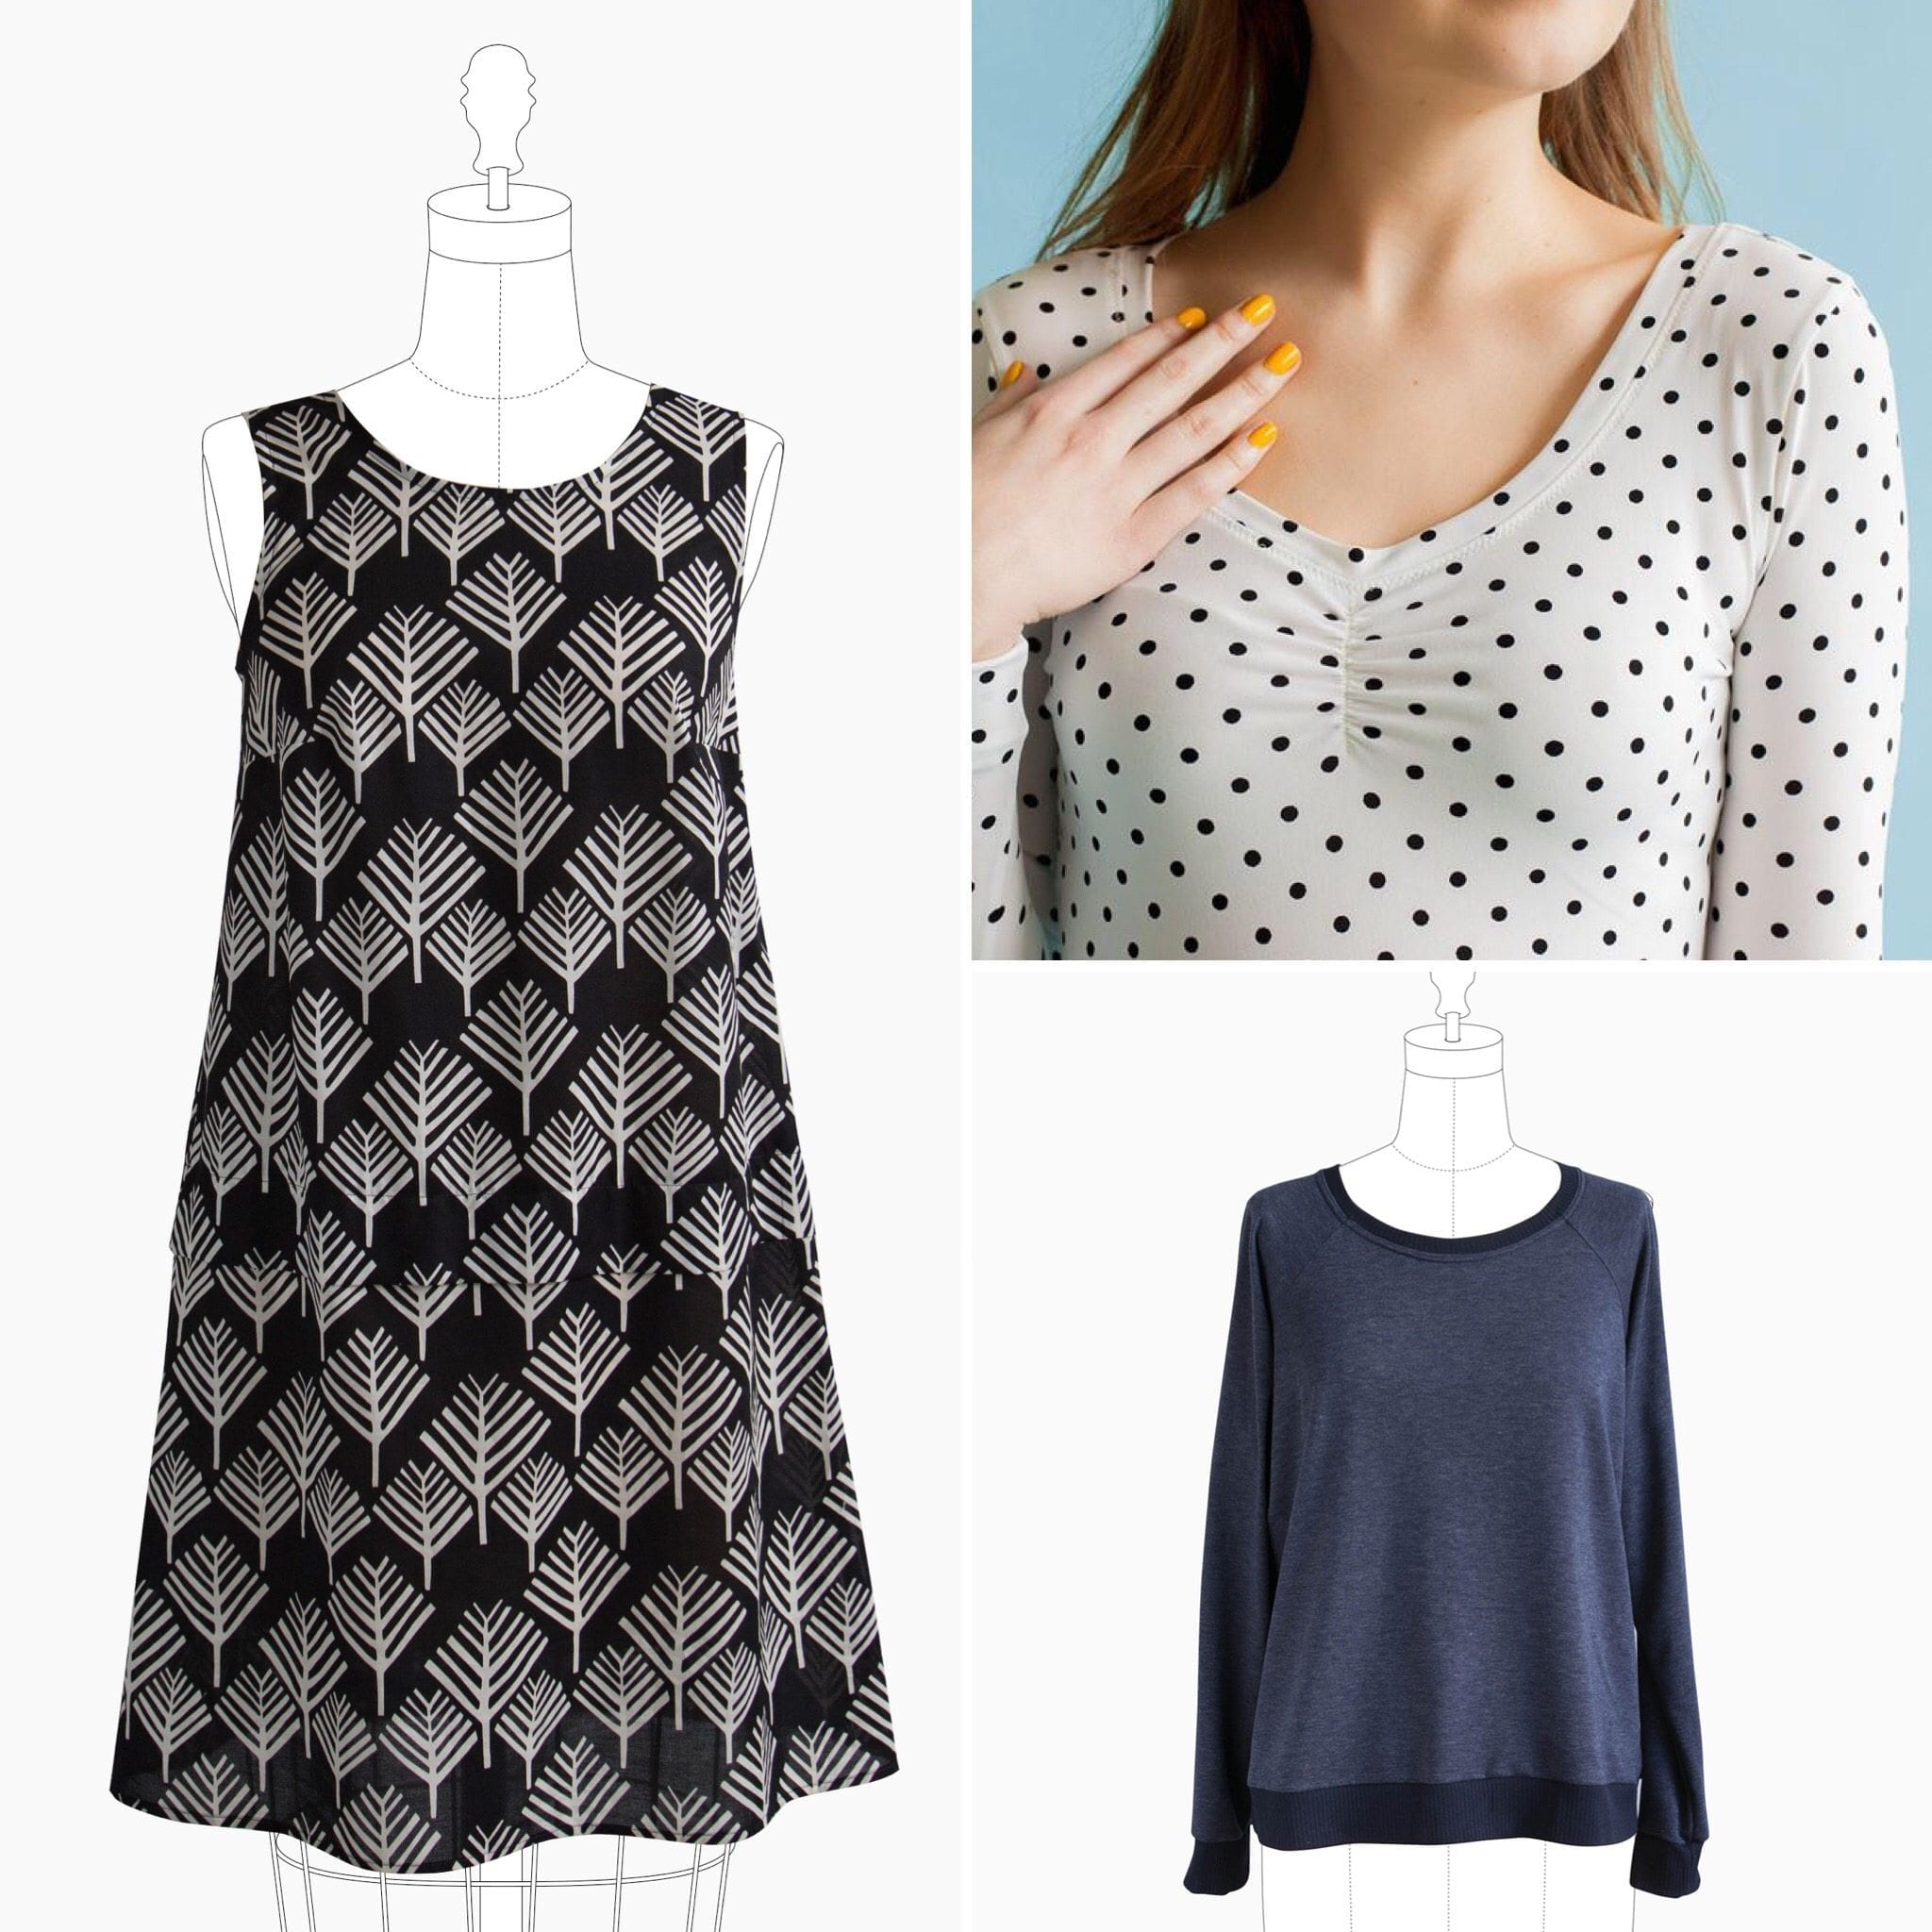 Indie sewing patterns - Time to Sew